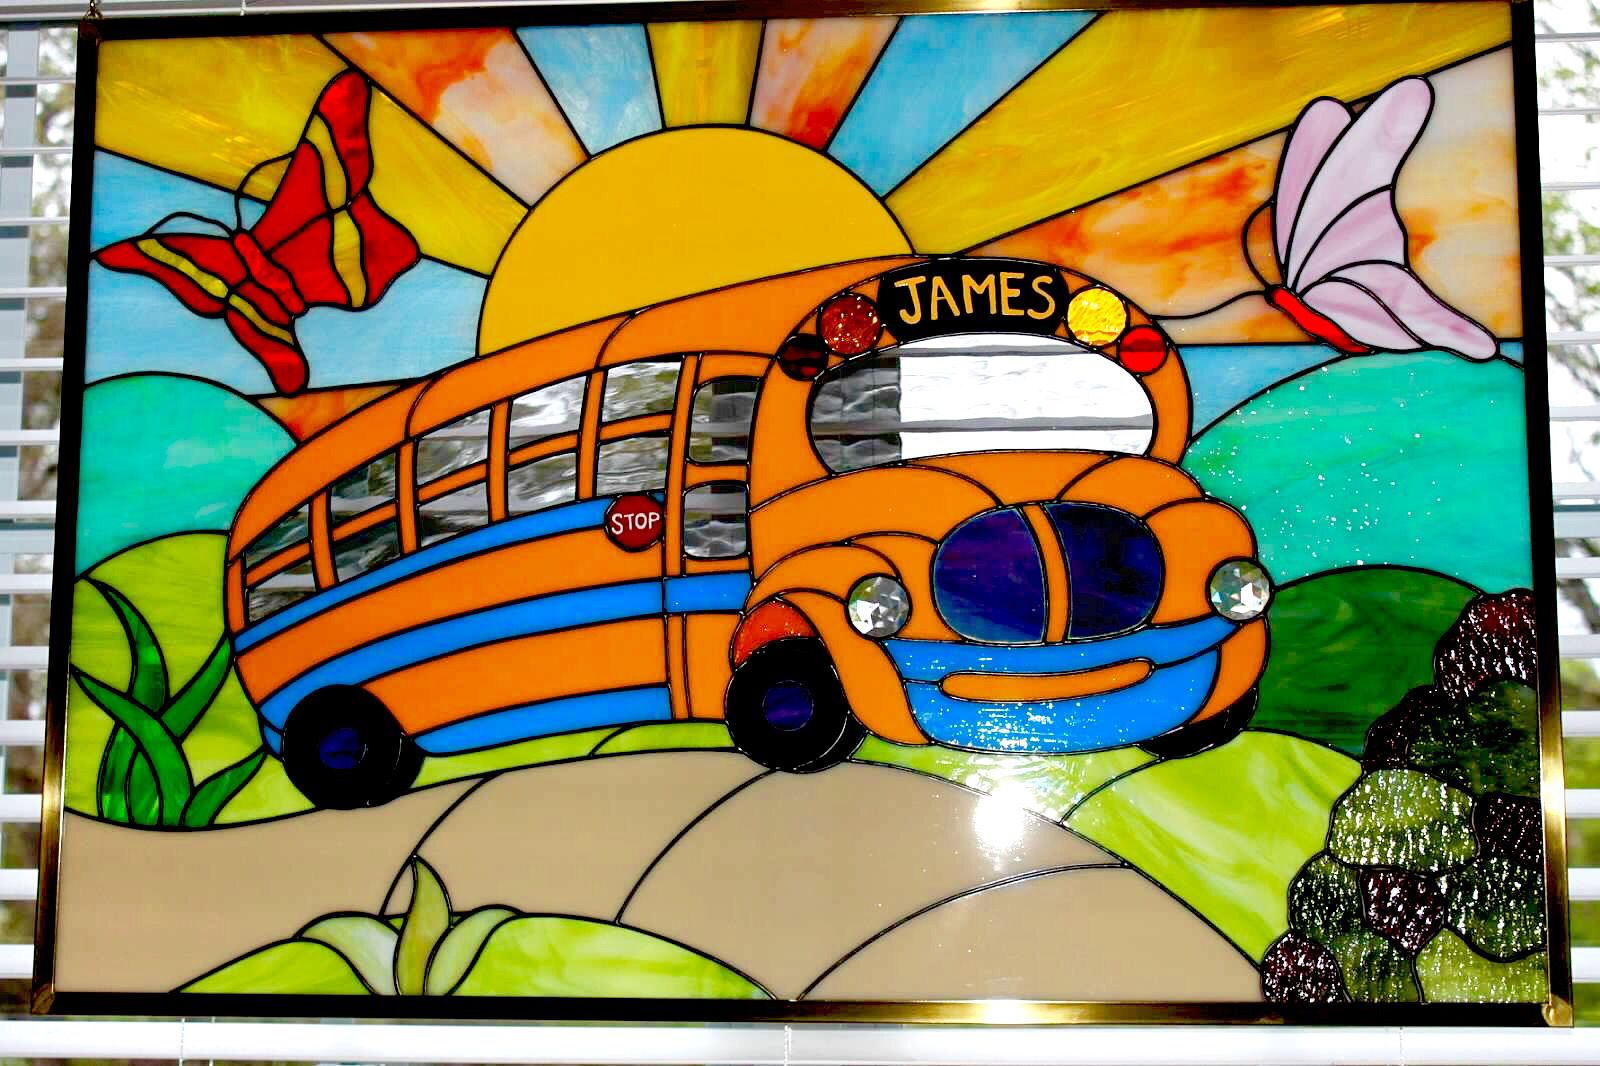 Child's personalized school bus  J&M Stained Glass, North